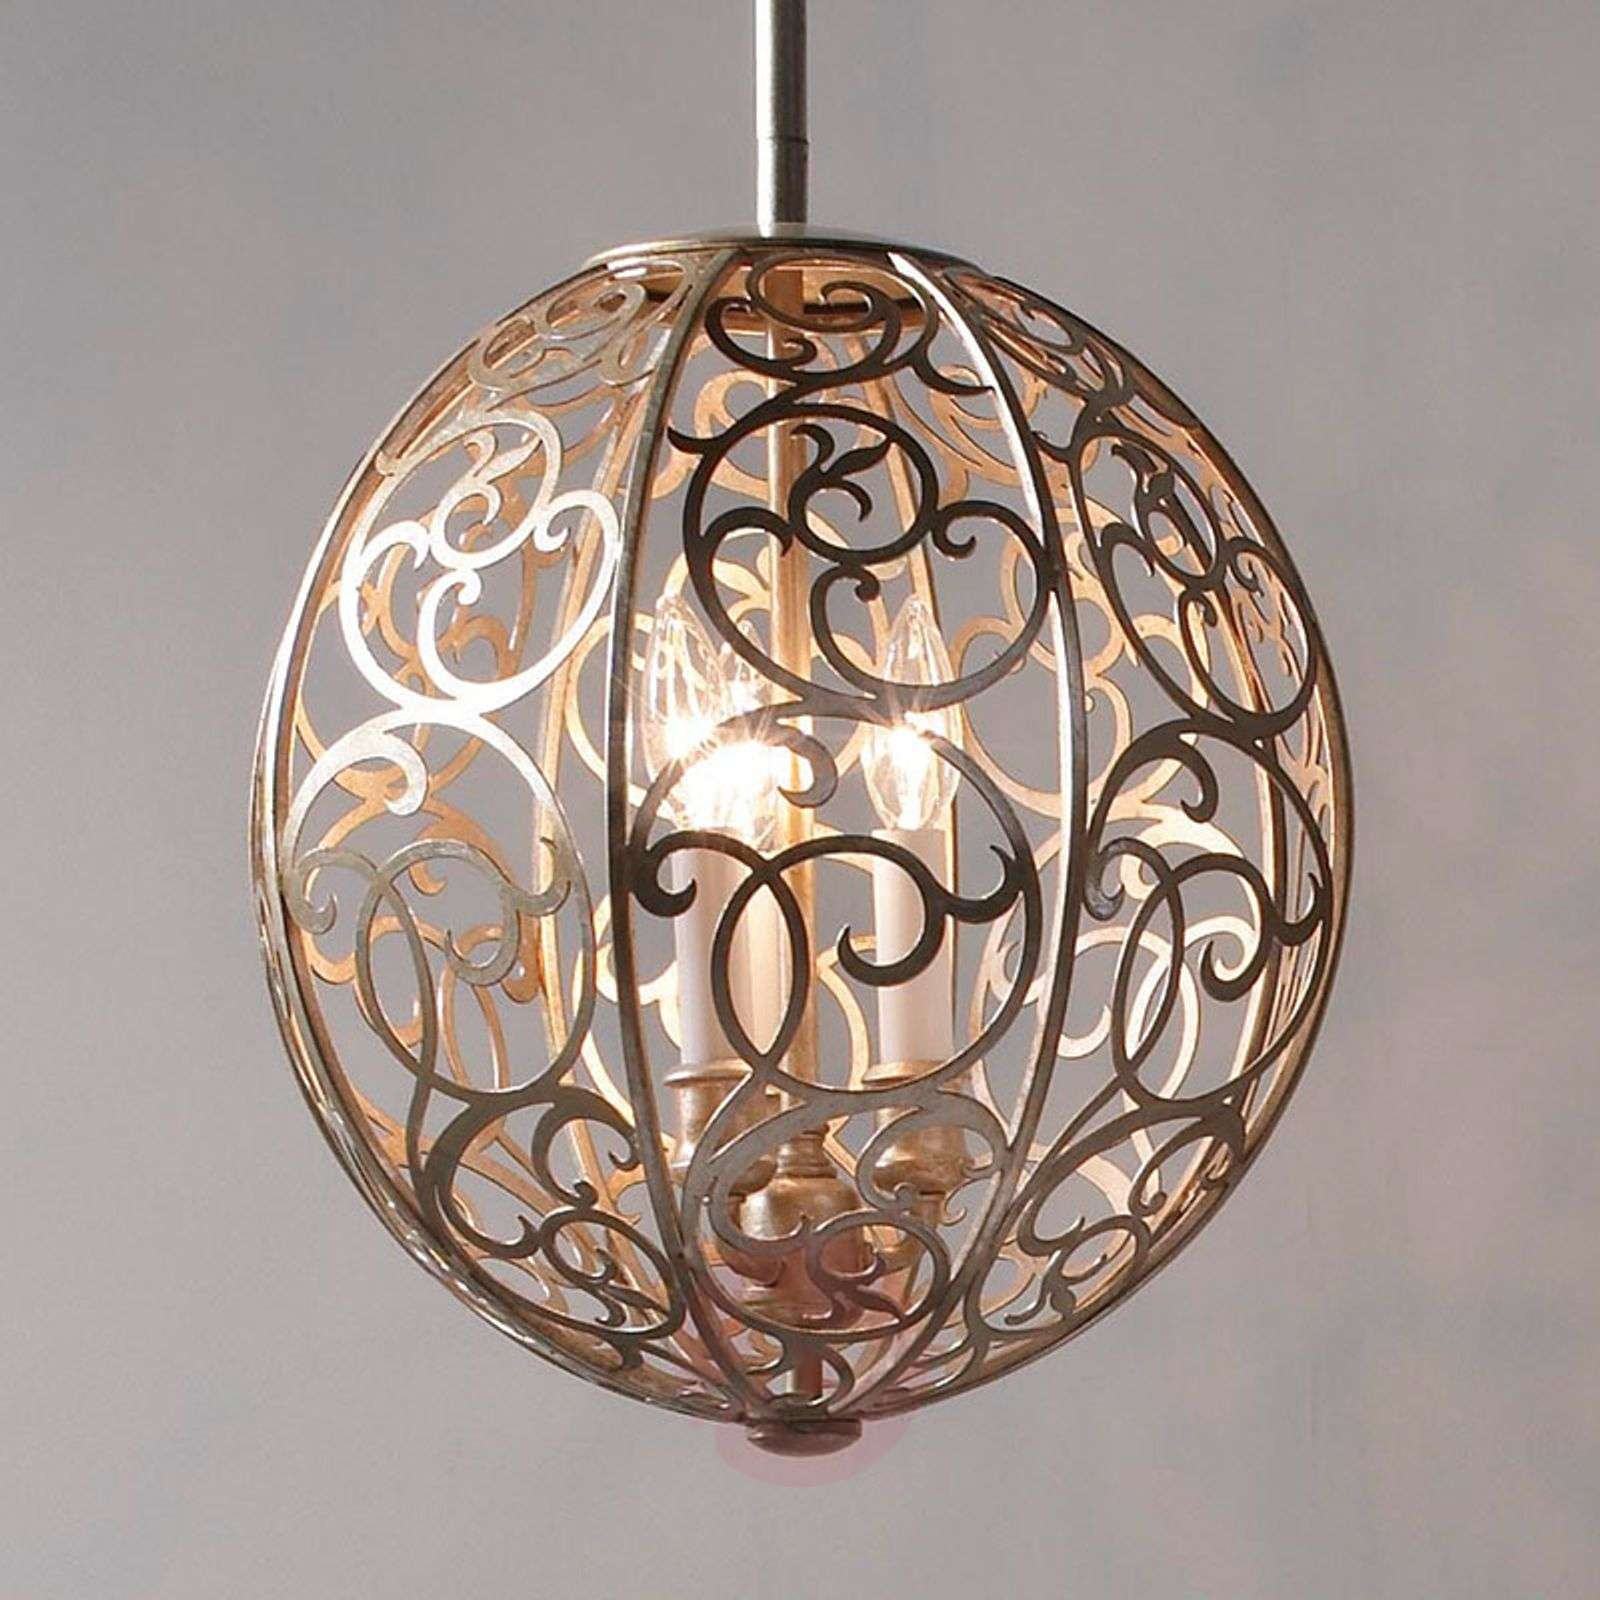 Arabesque suspension à motif artistique-3048245-01